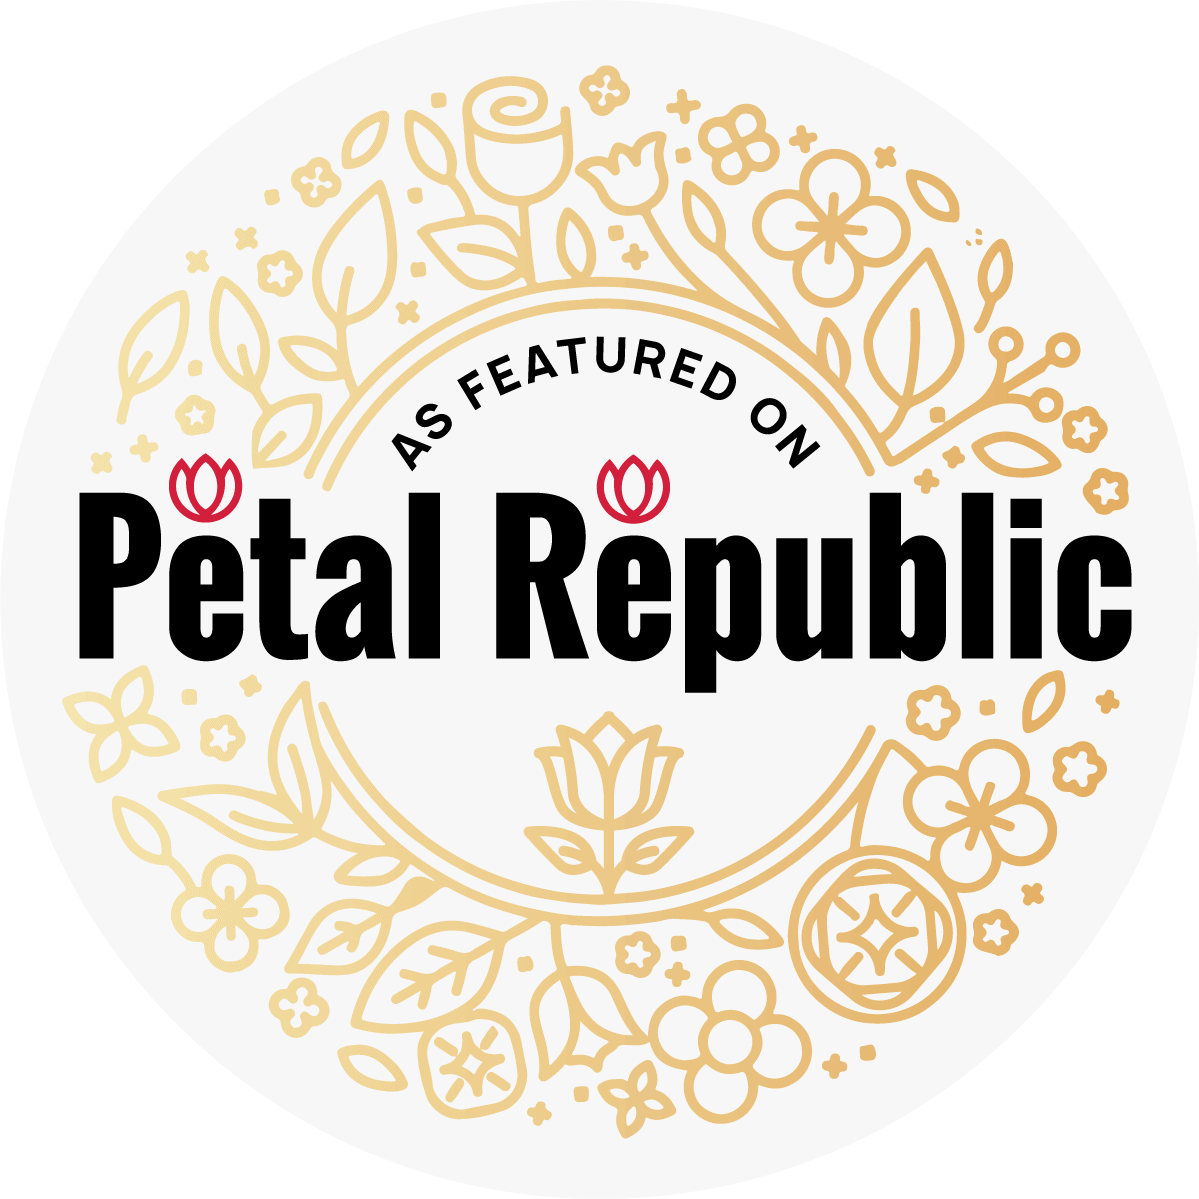 As Featured on Petal Republic